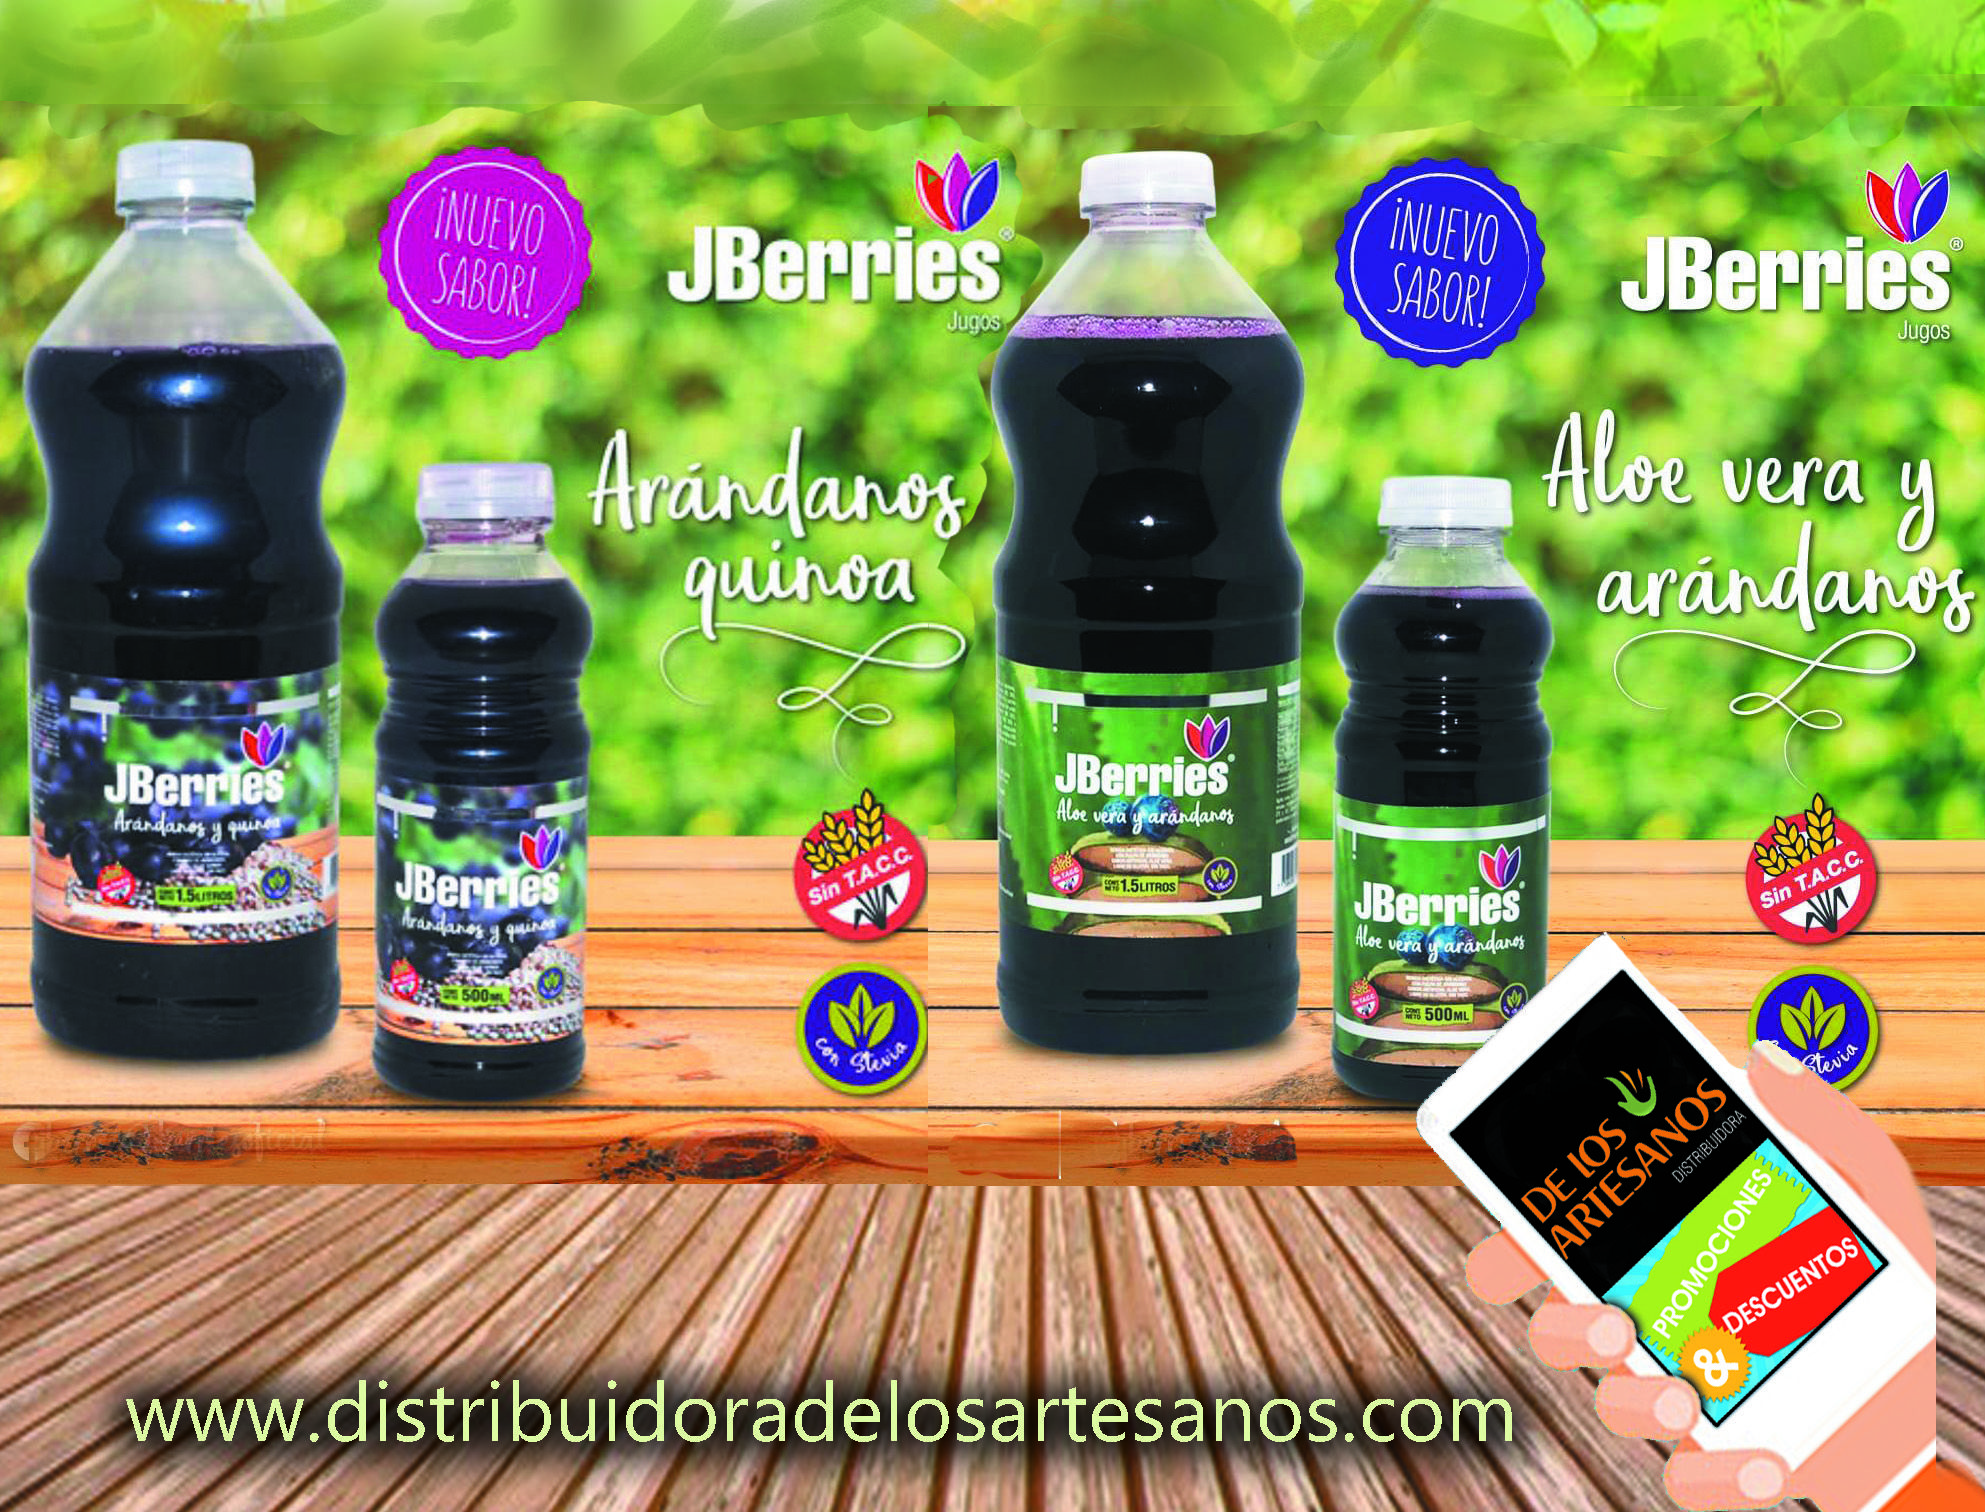 Ugo De Arandanos Jberries Light Sin Alcohol Jugos Nuevos Sabores